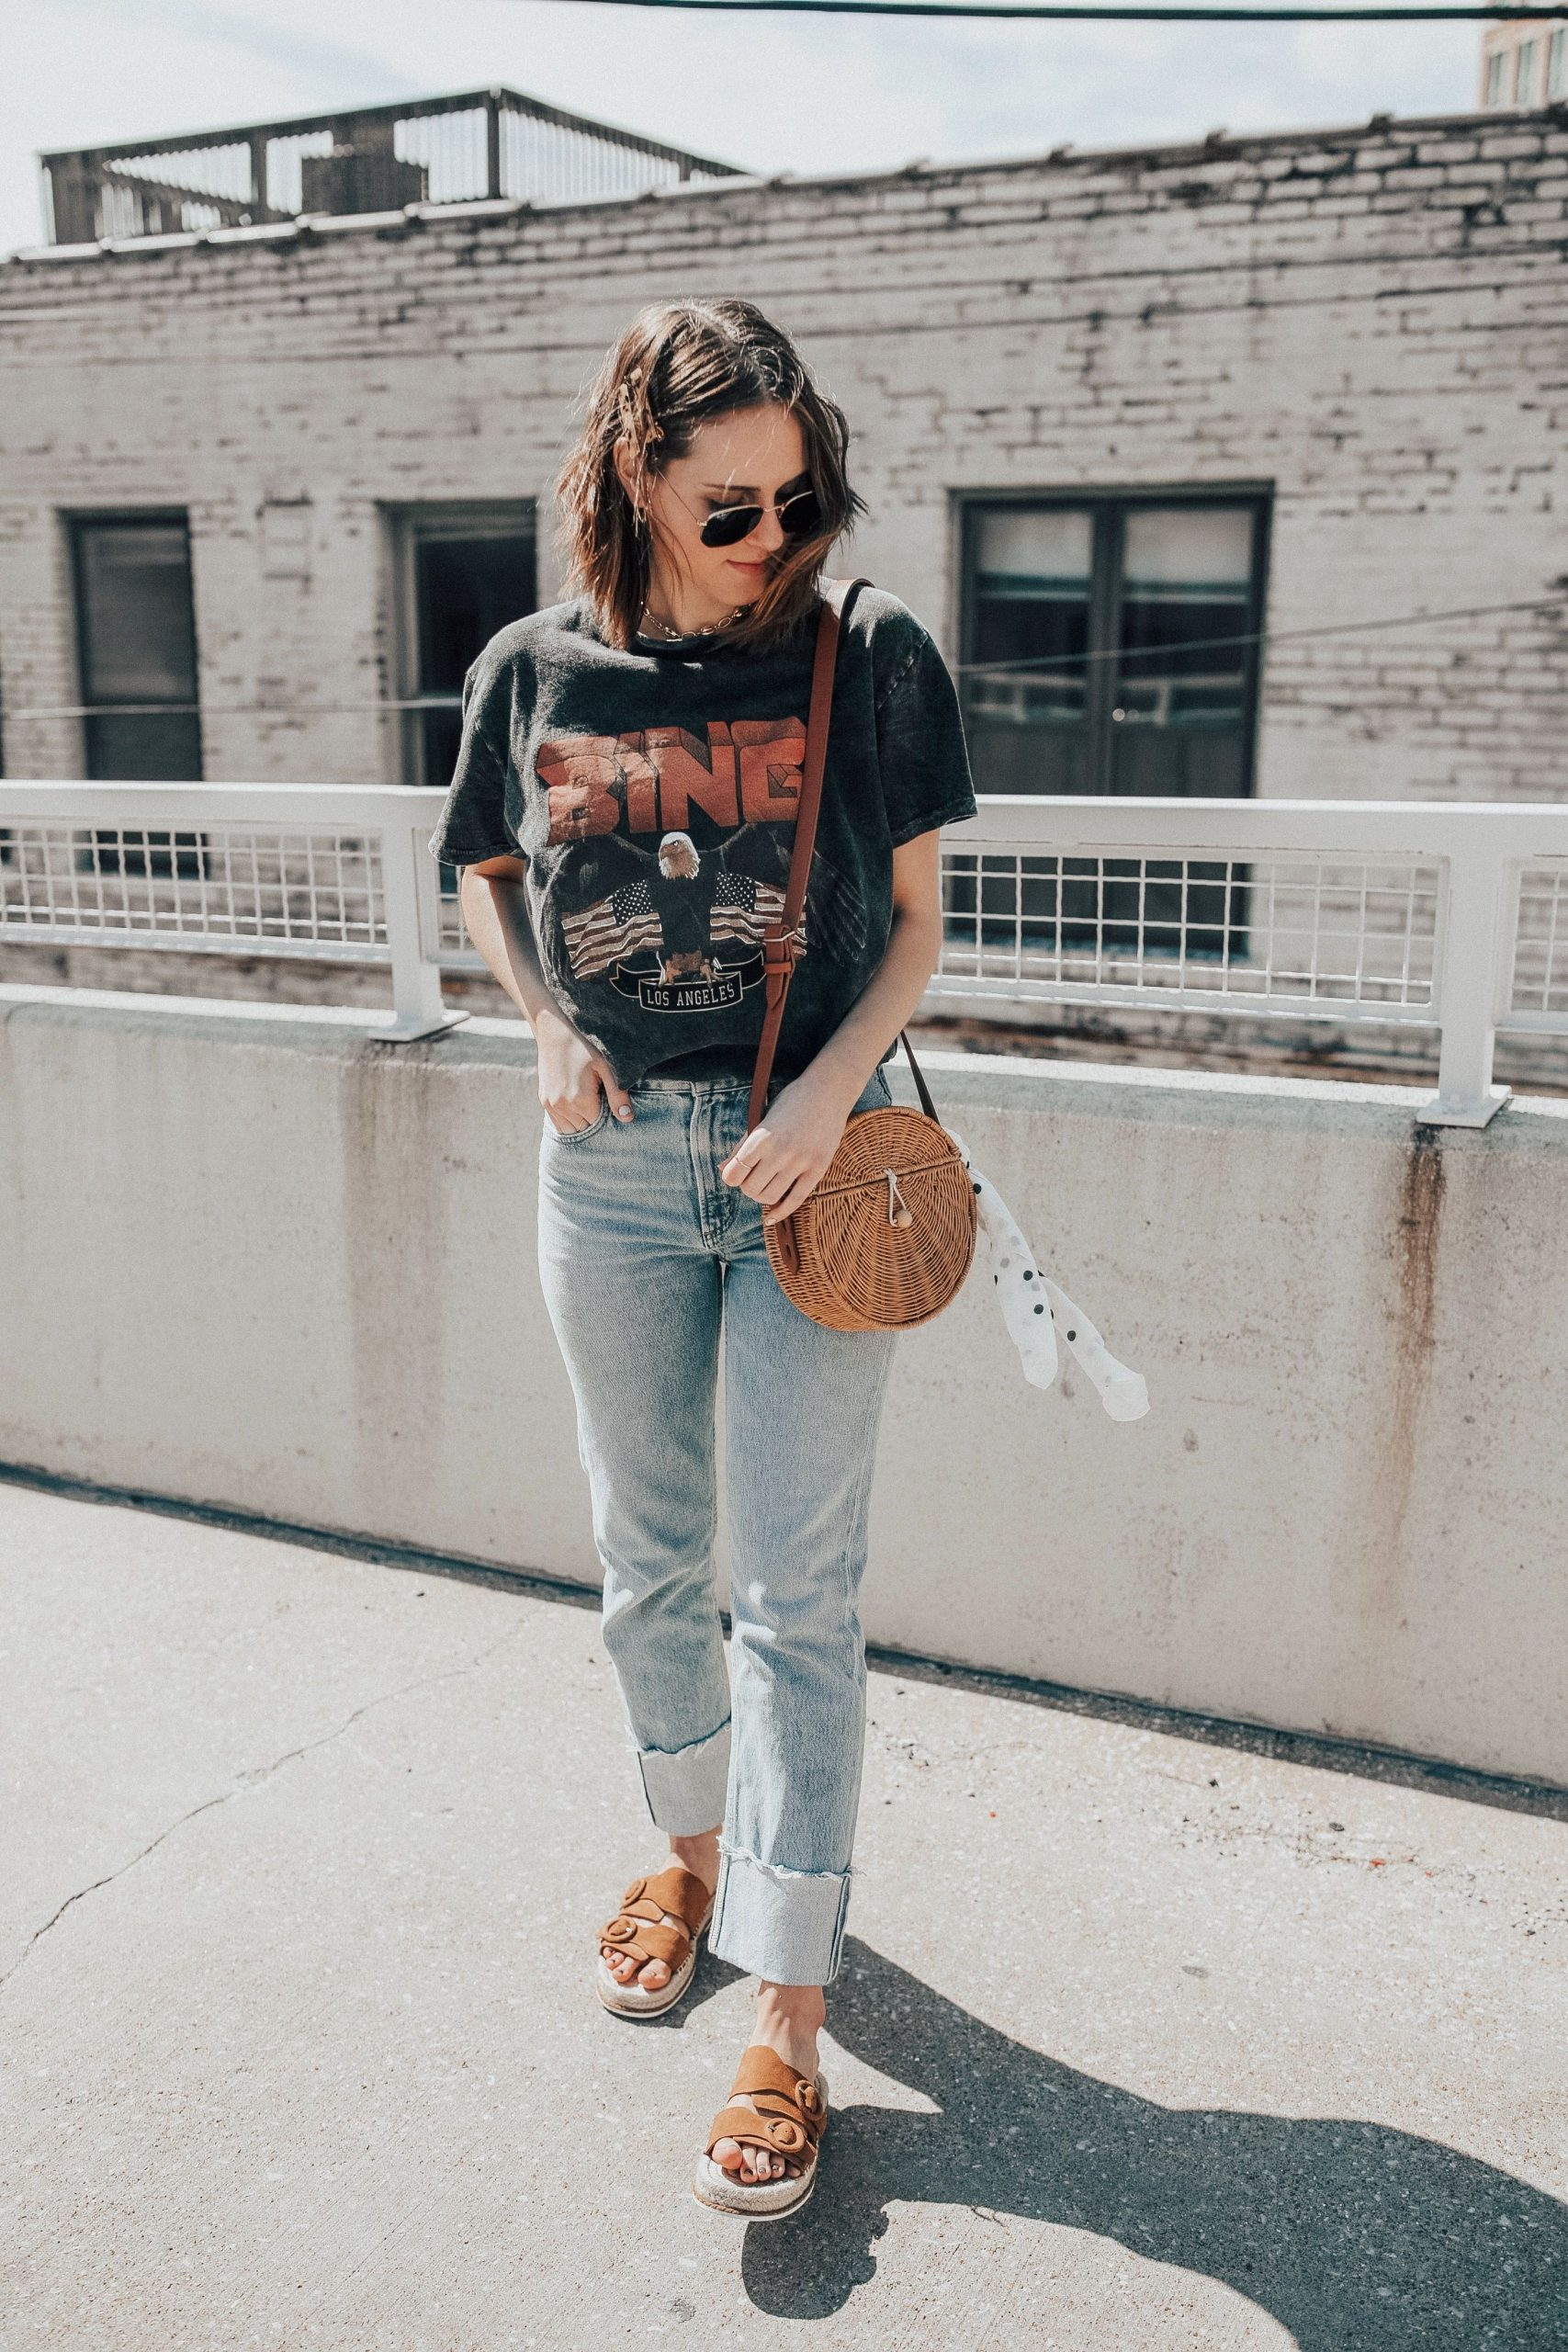 Cool Graphic Tee Outfit Ideas